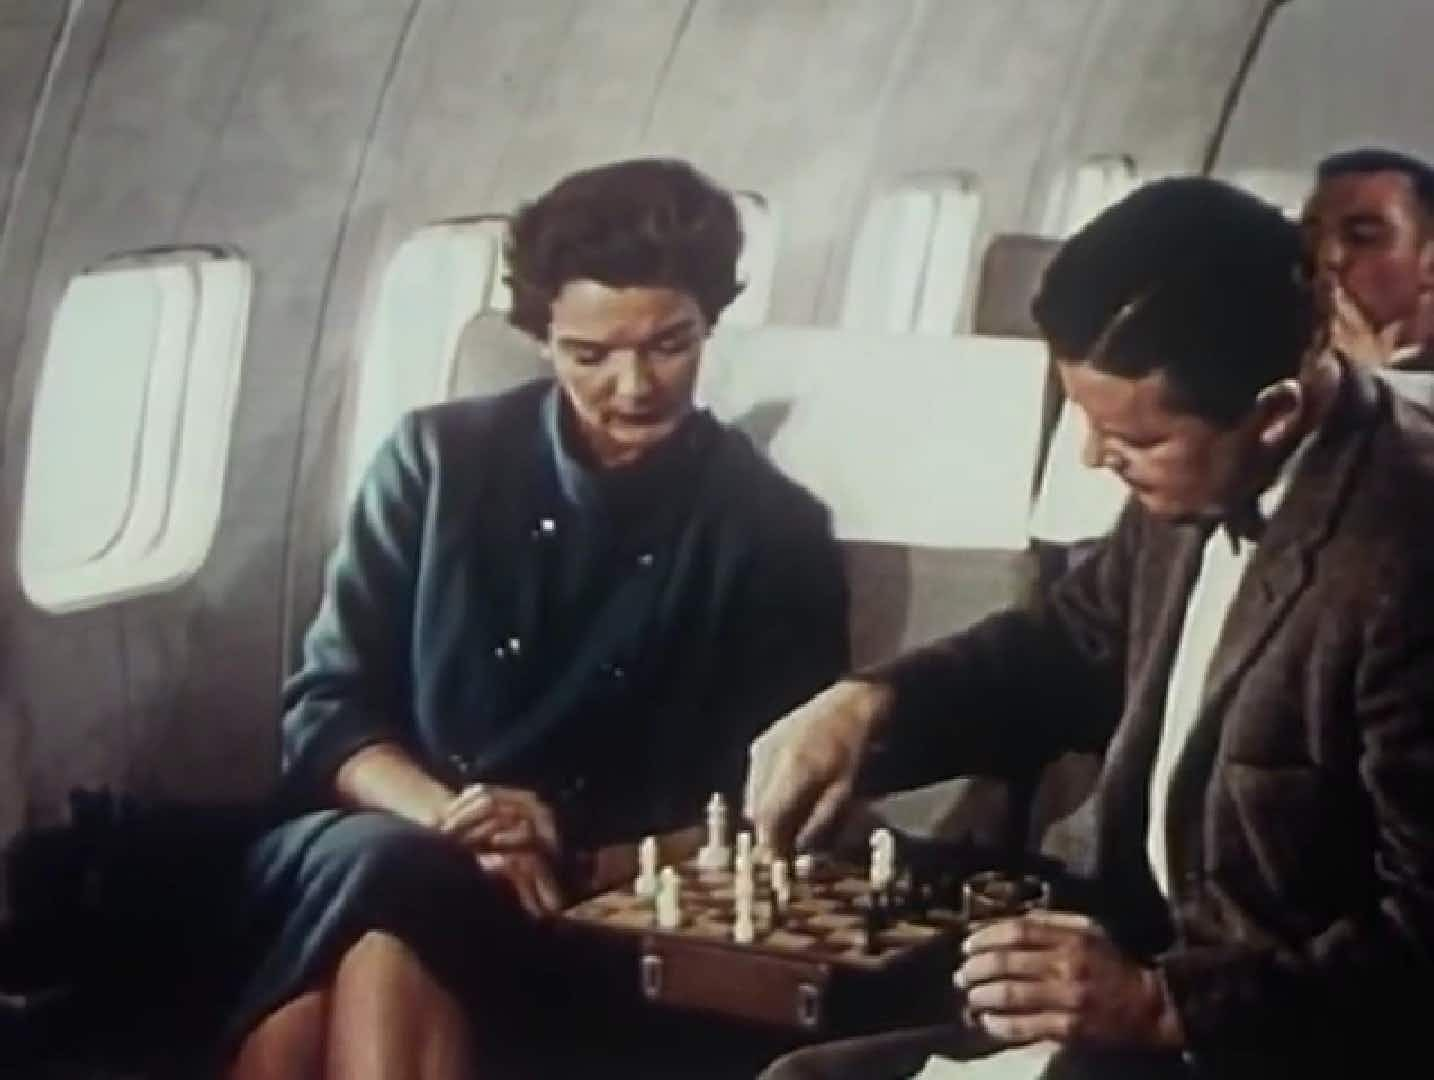 Newly-discovered video shows the onboard comforts in the golden age of travel